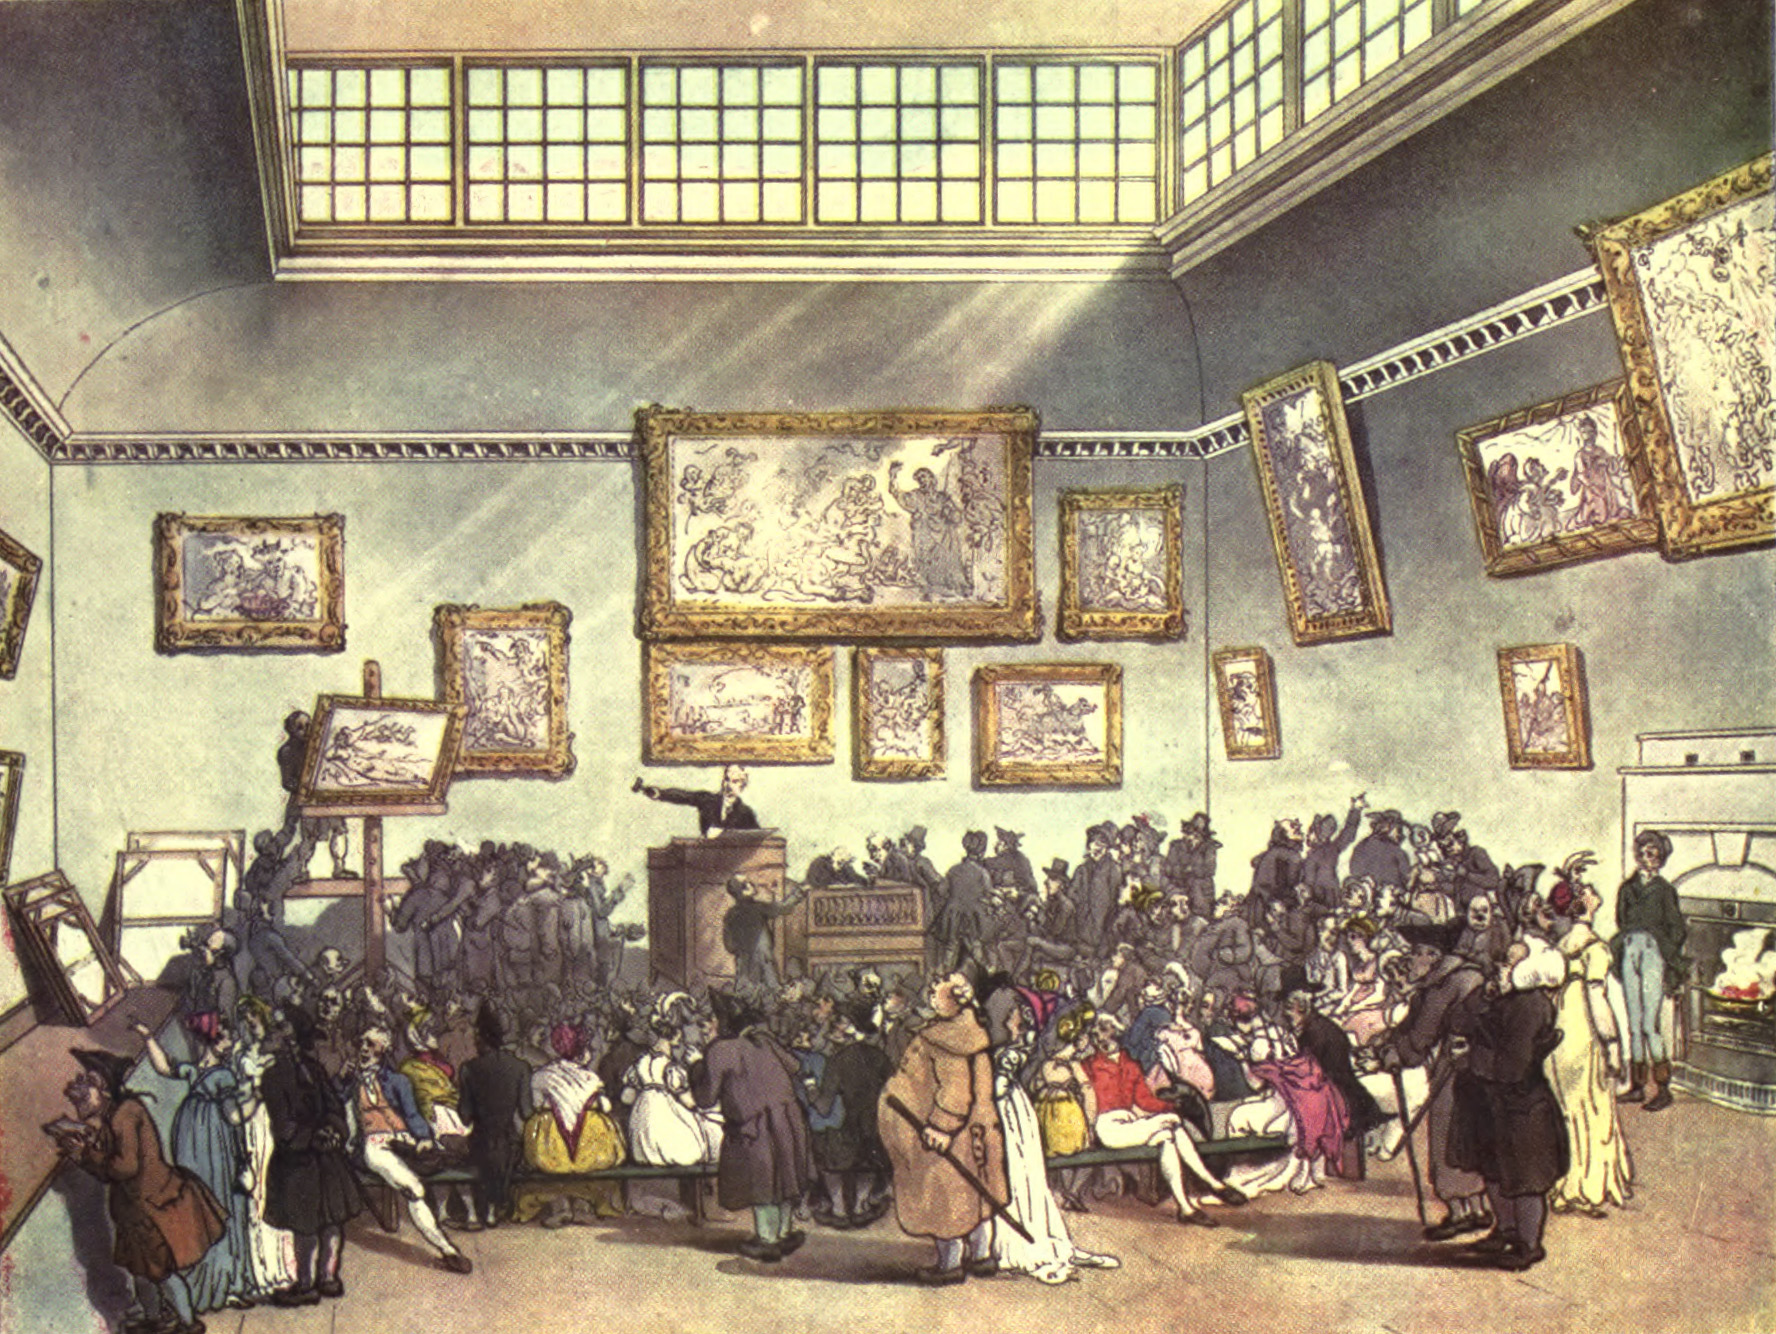 Auction Room by Rowlandson